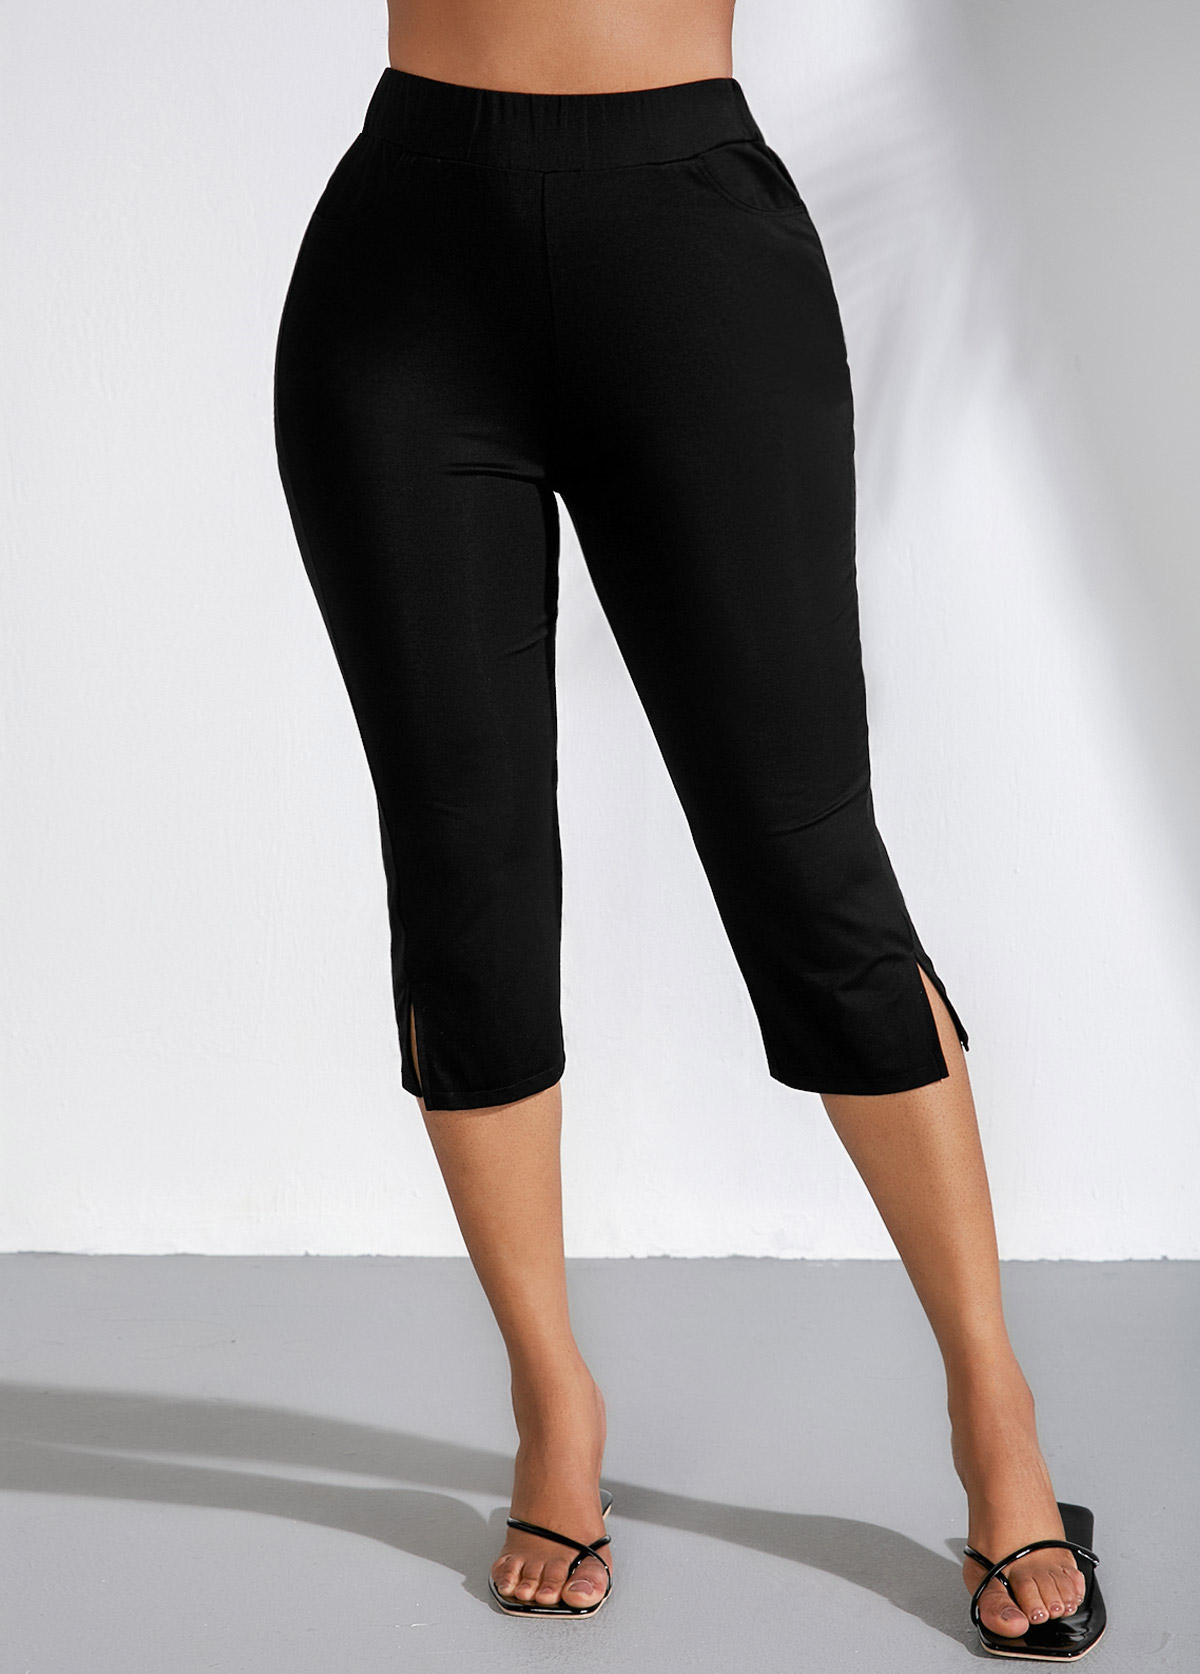 High Waist Side Slit Black Cropped Pants